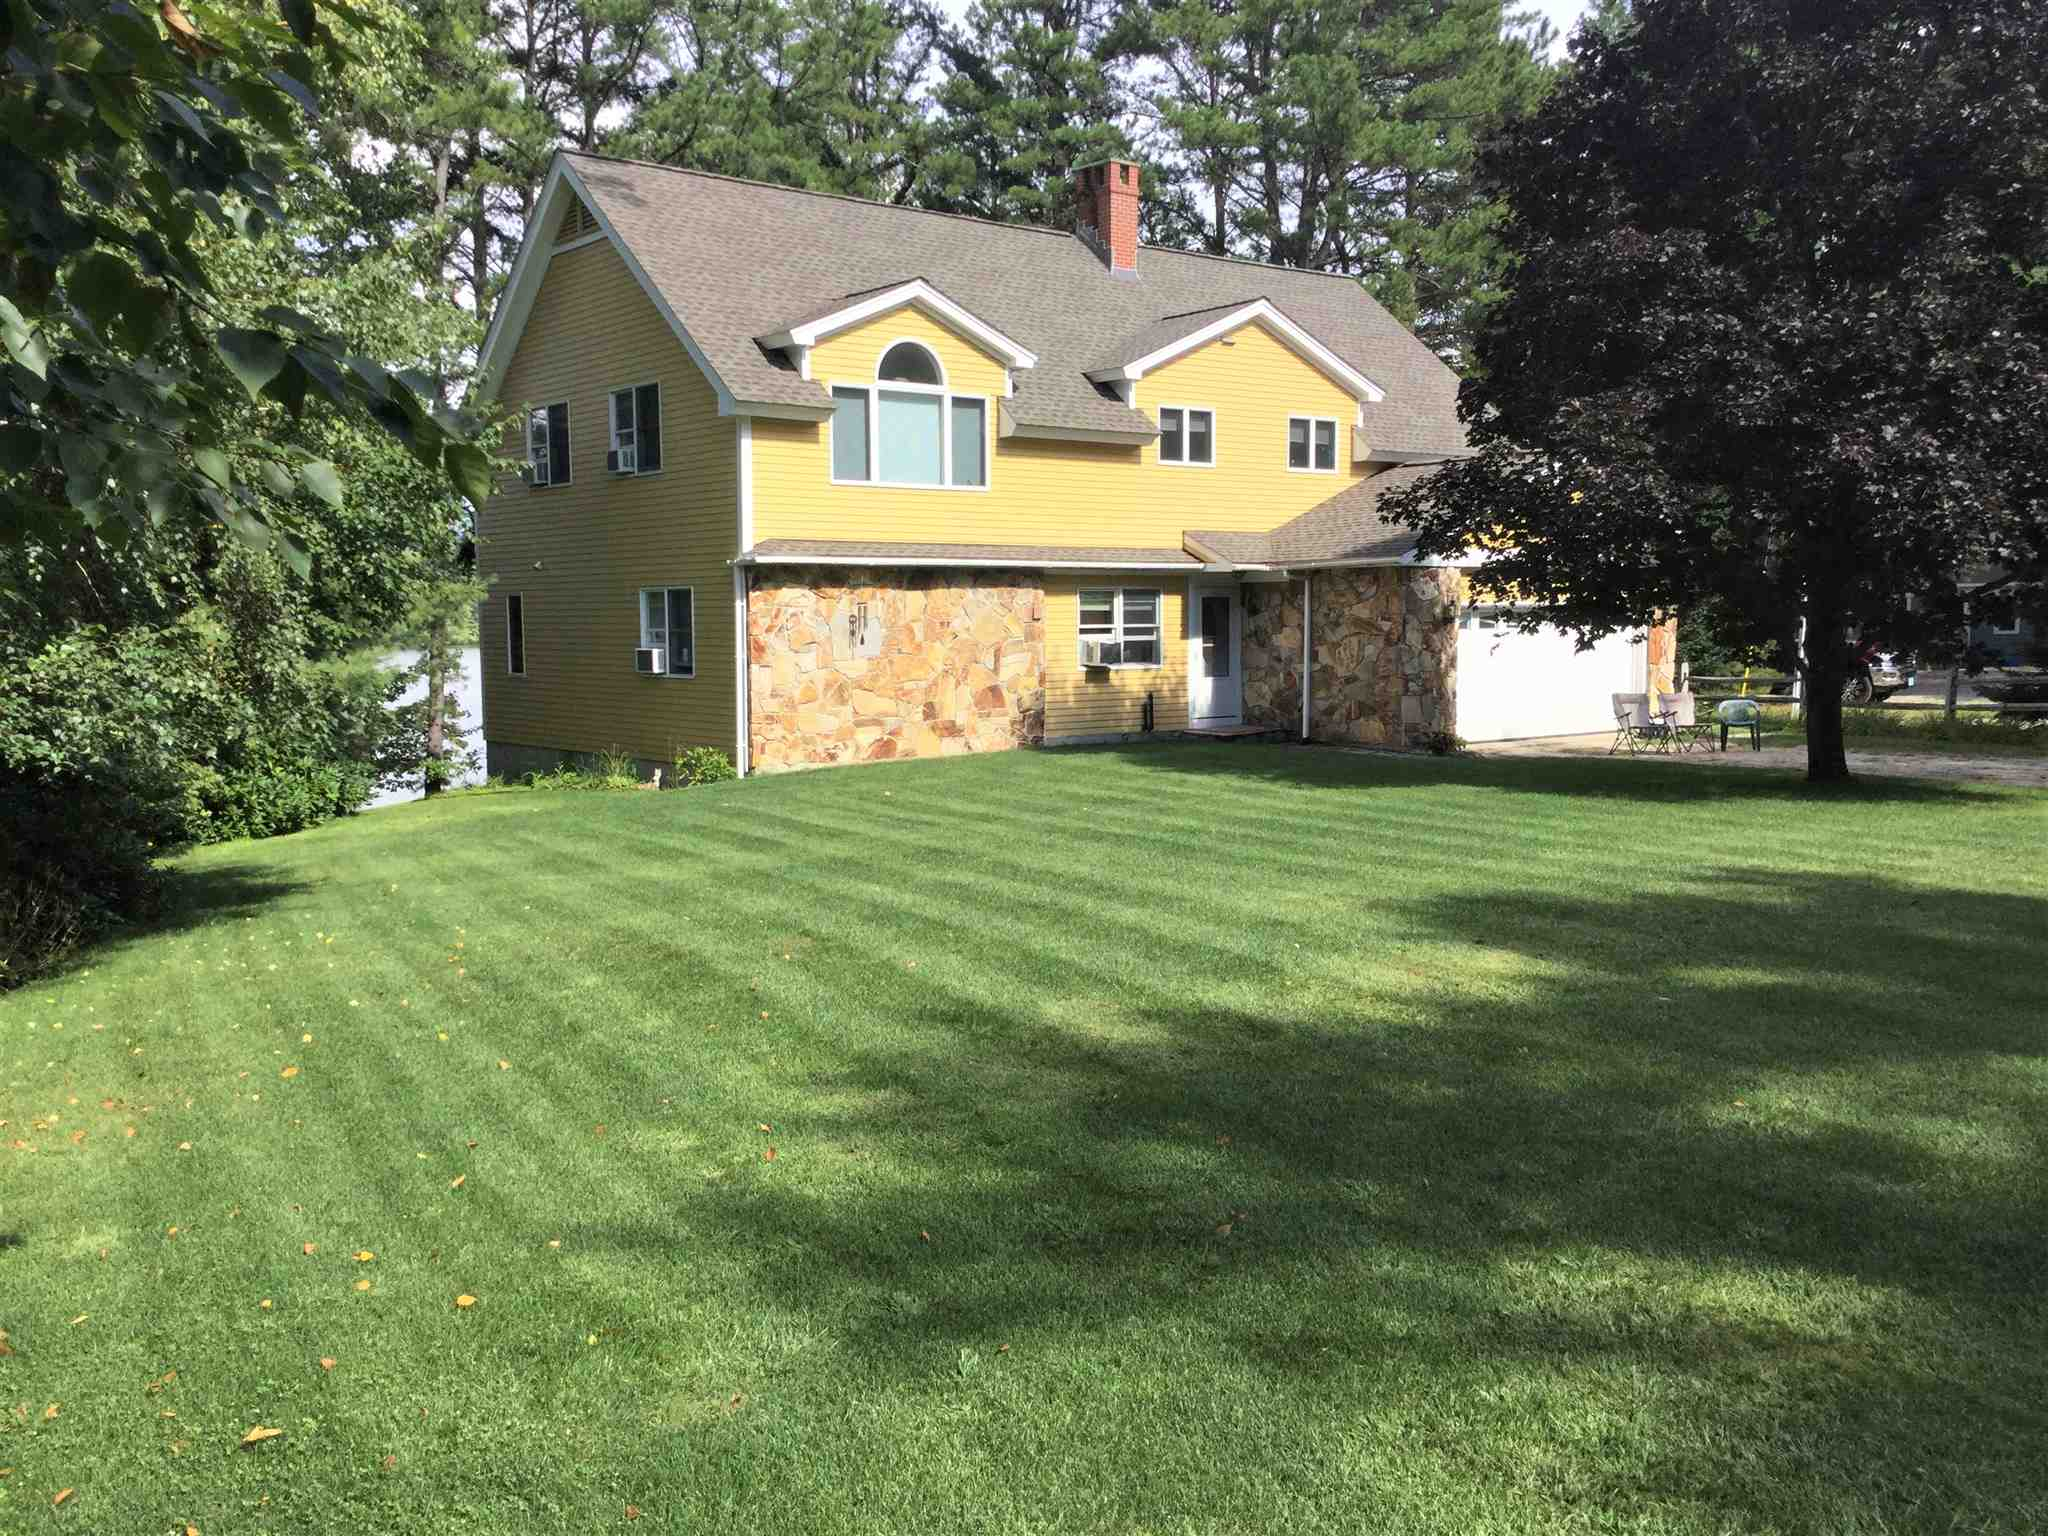 Photo of 167 West Bay Road Freedom NH 03836